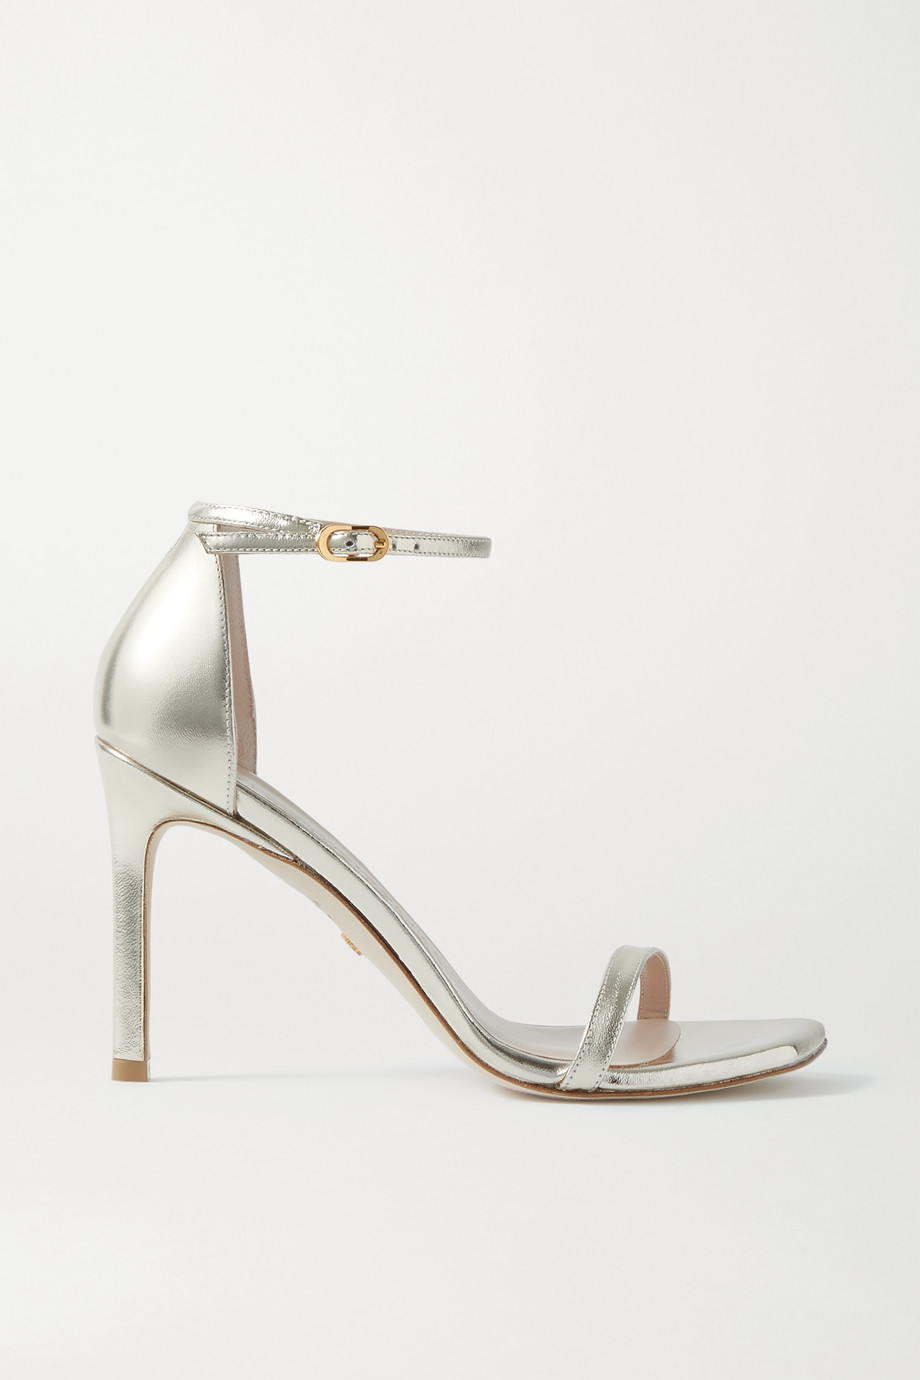 Stuart Weitzman Amelina metallic leather sandals